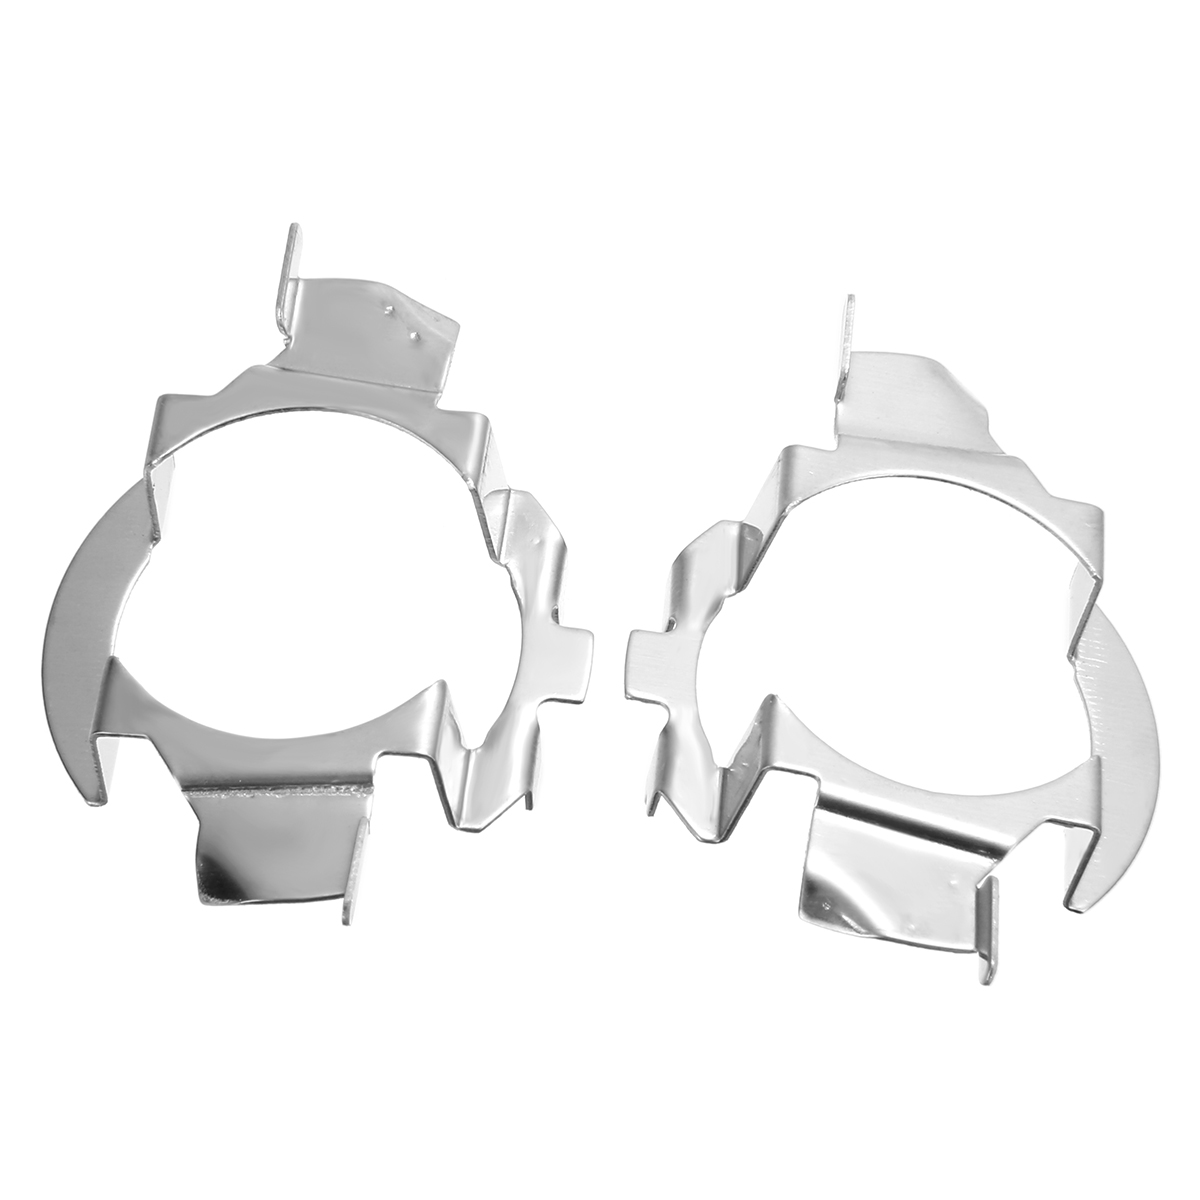 2pcs <font><b>H7</b></font> <font><b>LED</b></font> <font><b>Headlight</b></font> Bulb Holder Adapter For Vauxhall For <font><b>BMW</b></font> <font><b>E60</b></font> E61 X5 For Audi A3 A4 For Benz C-class A-class NO Bulbs image